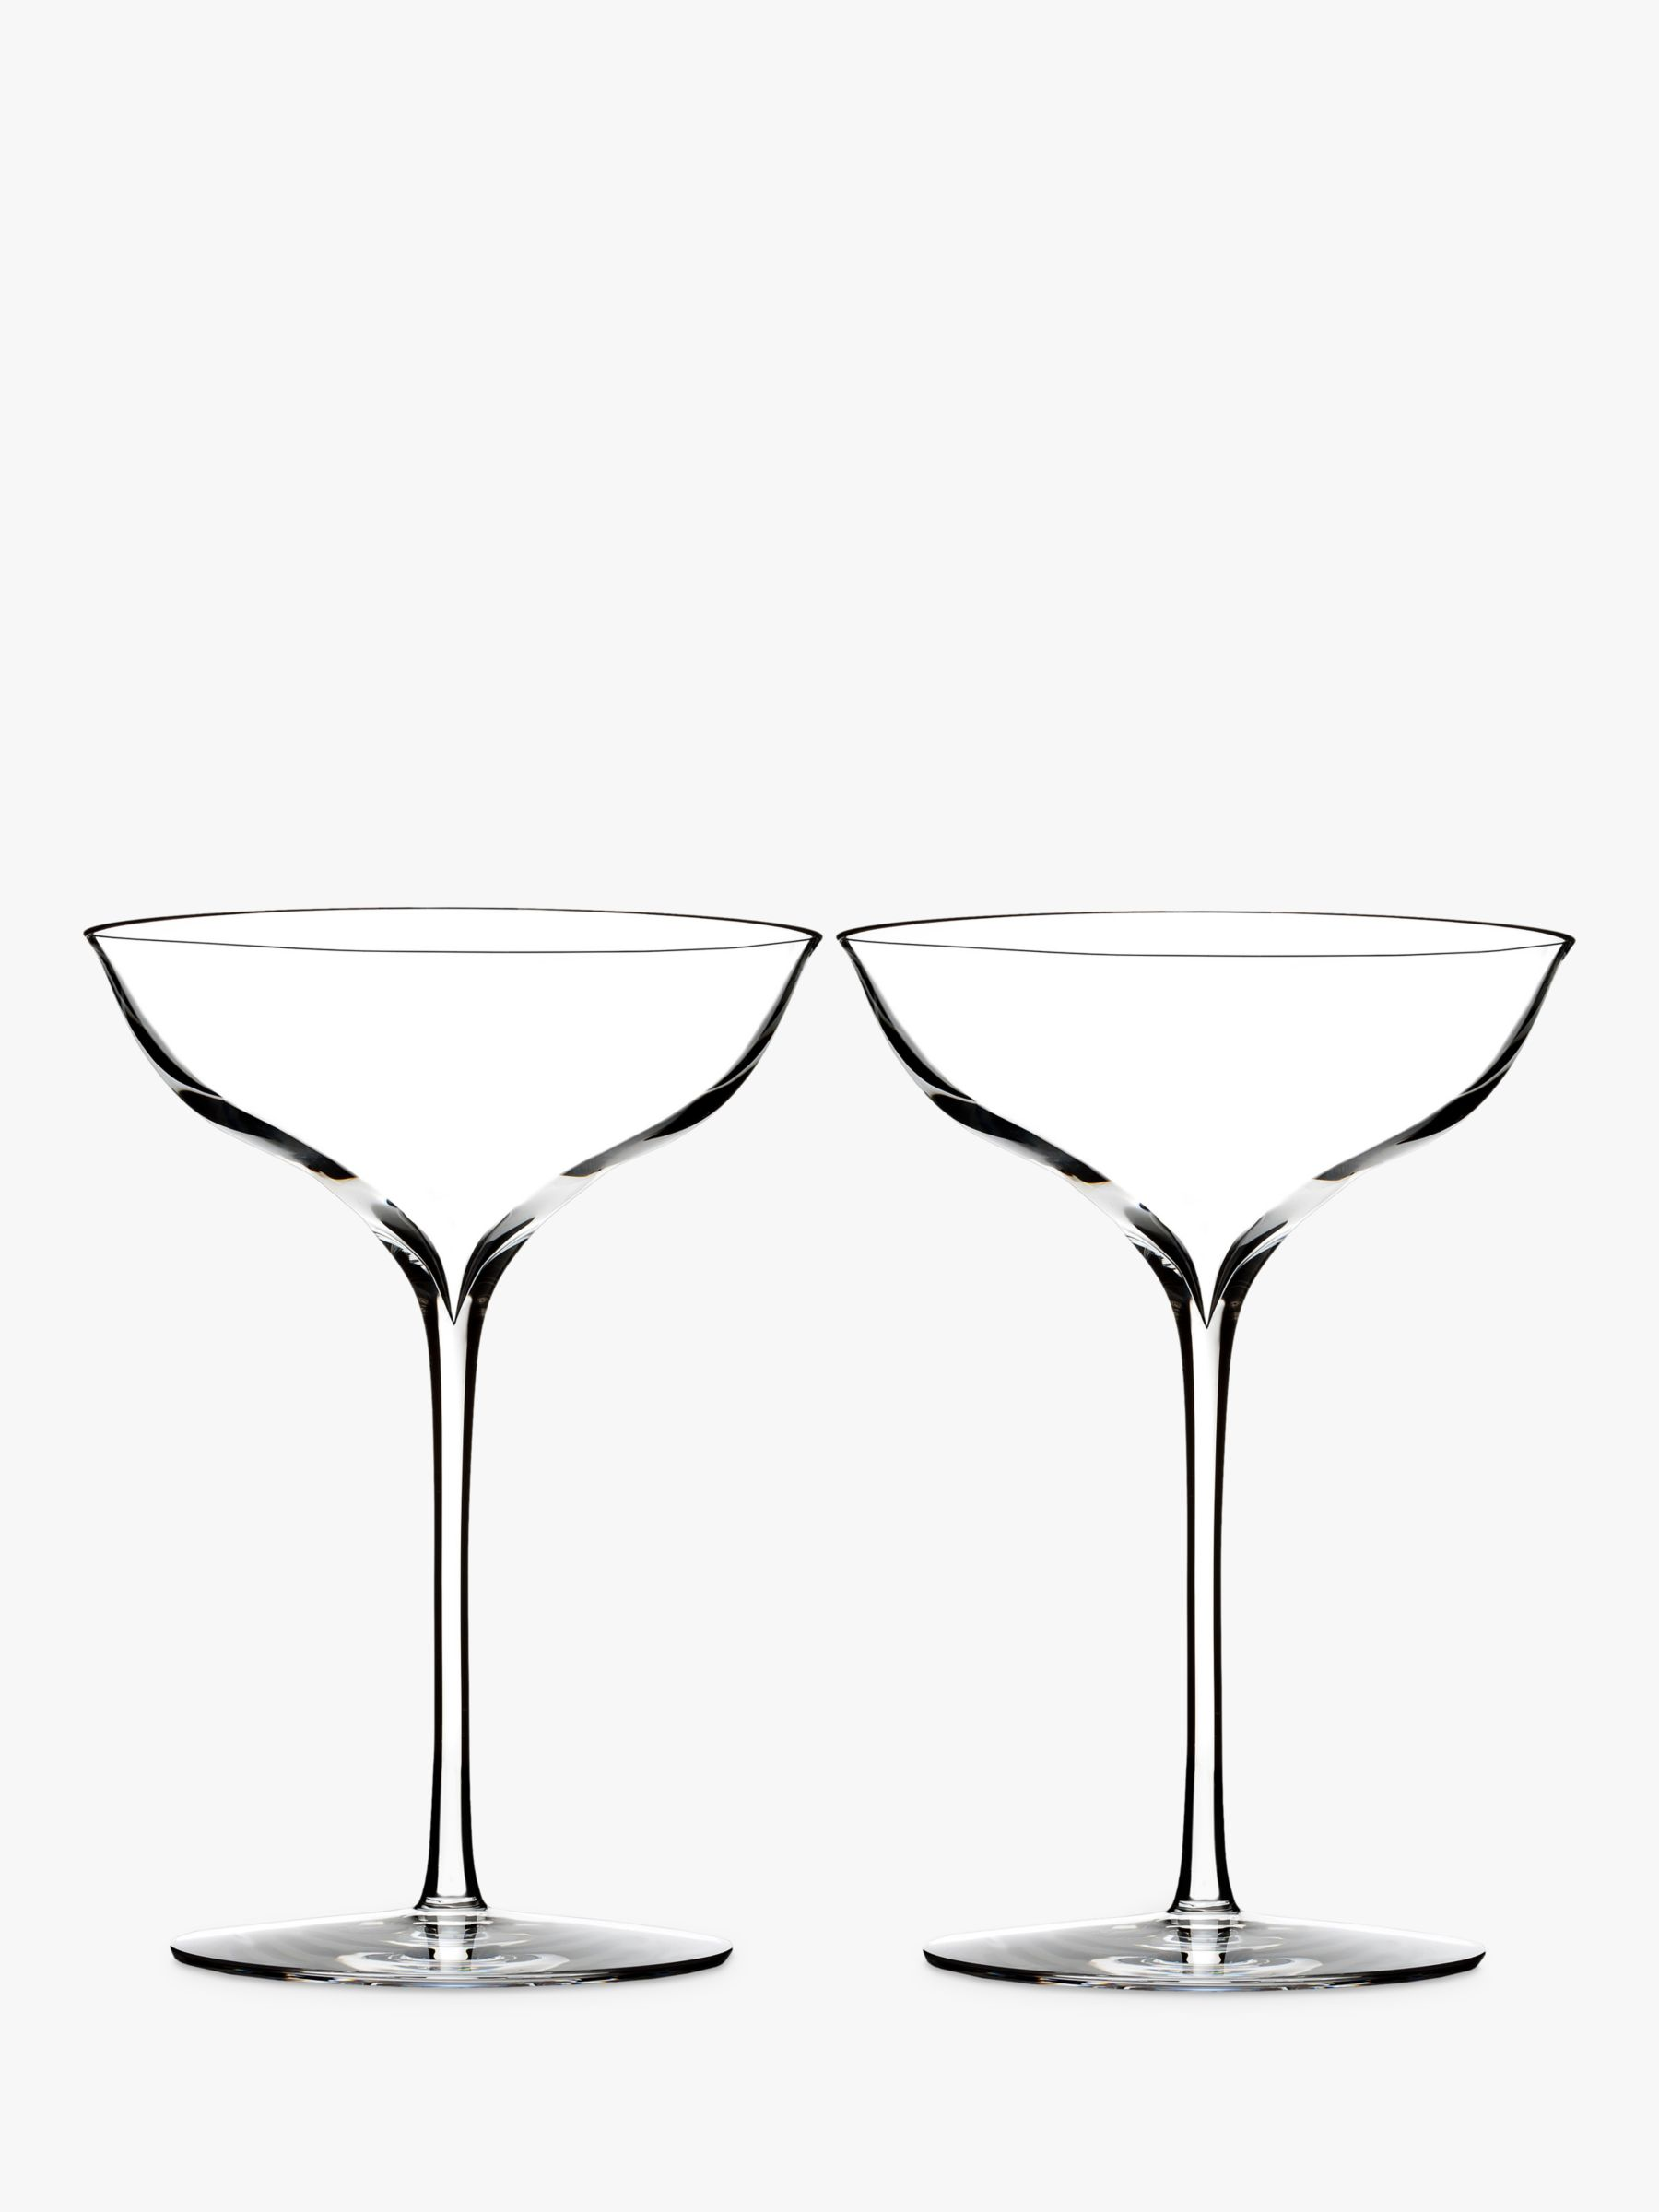 Champagne Coupe Waterford Elegance Crystal Champagne Coupe Glasses 230ml Set Of 2 Clear